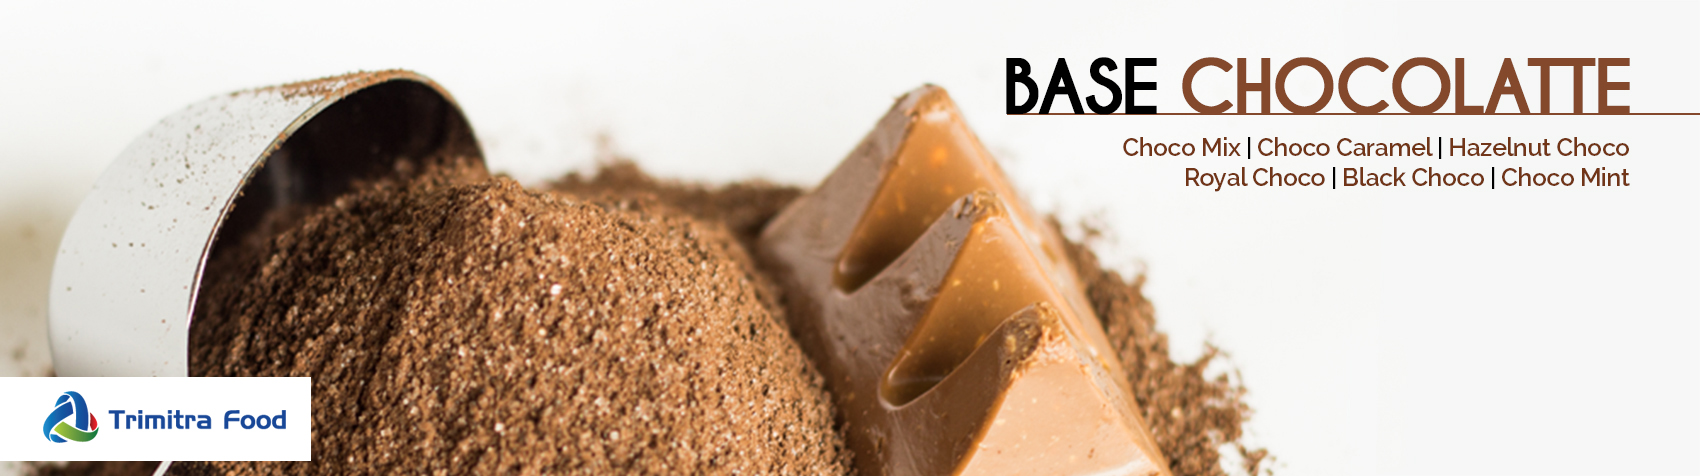 Header-Base-Chocolatte-2-rev-1